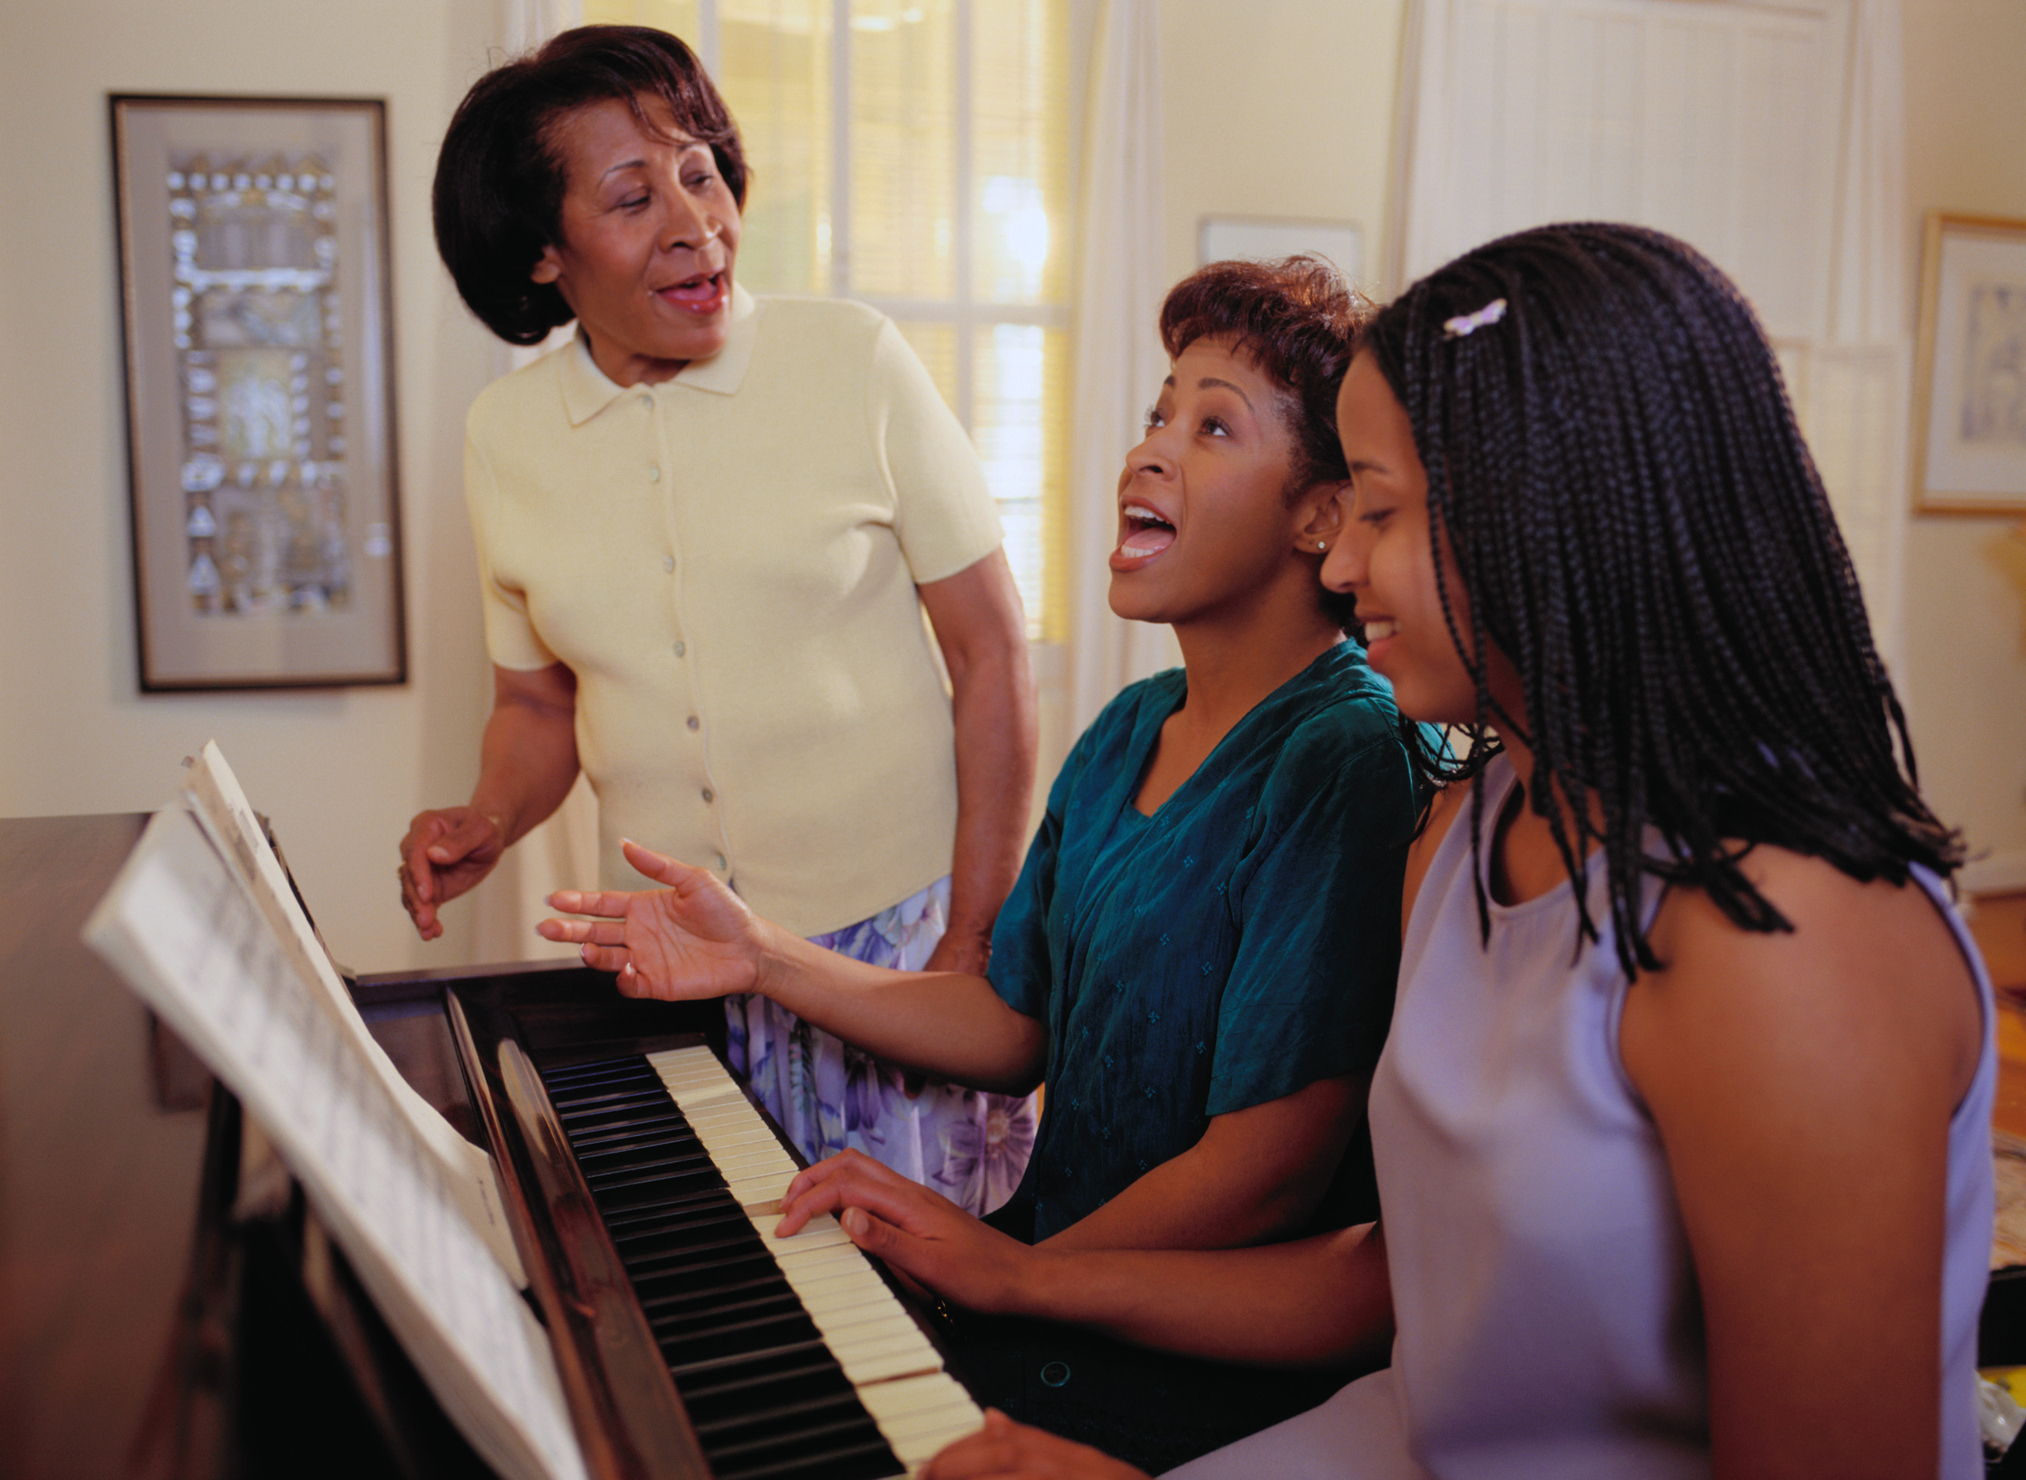 3 ways group singing boosts our health